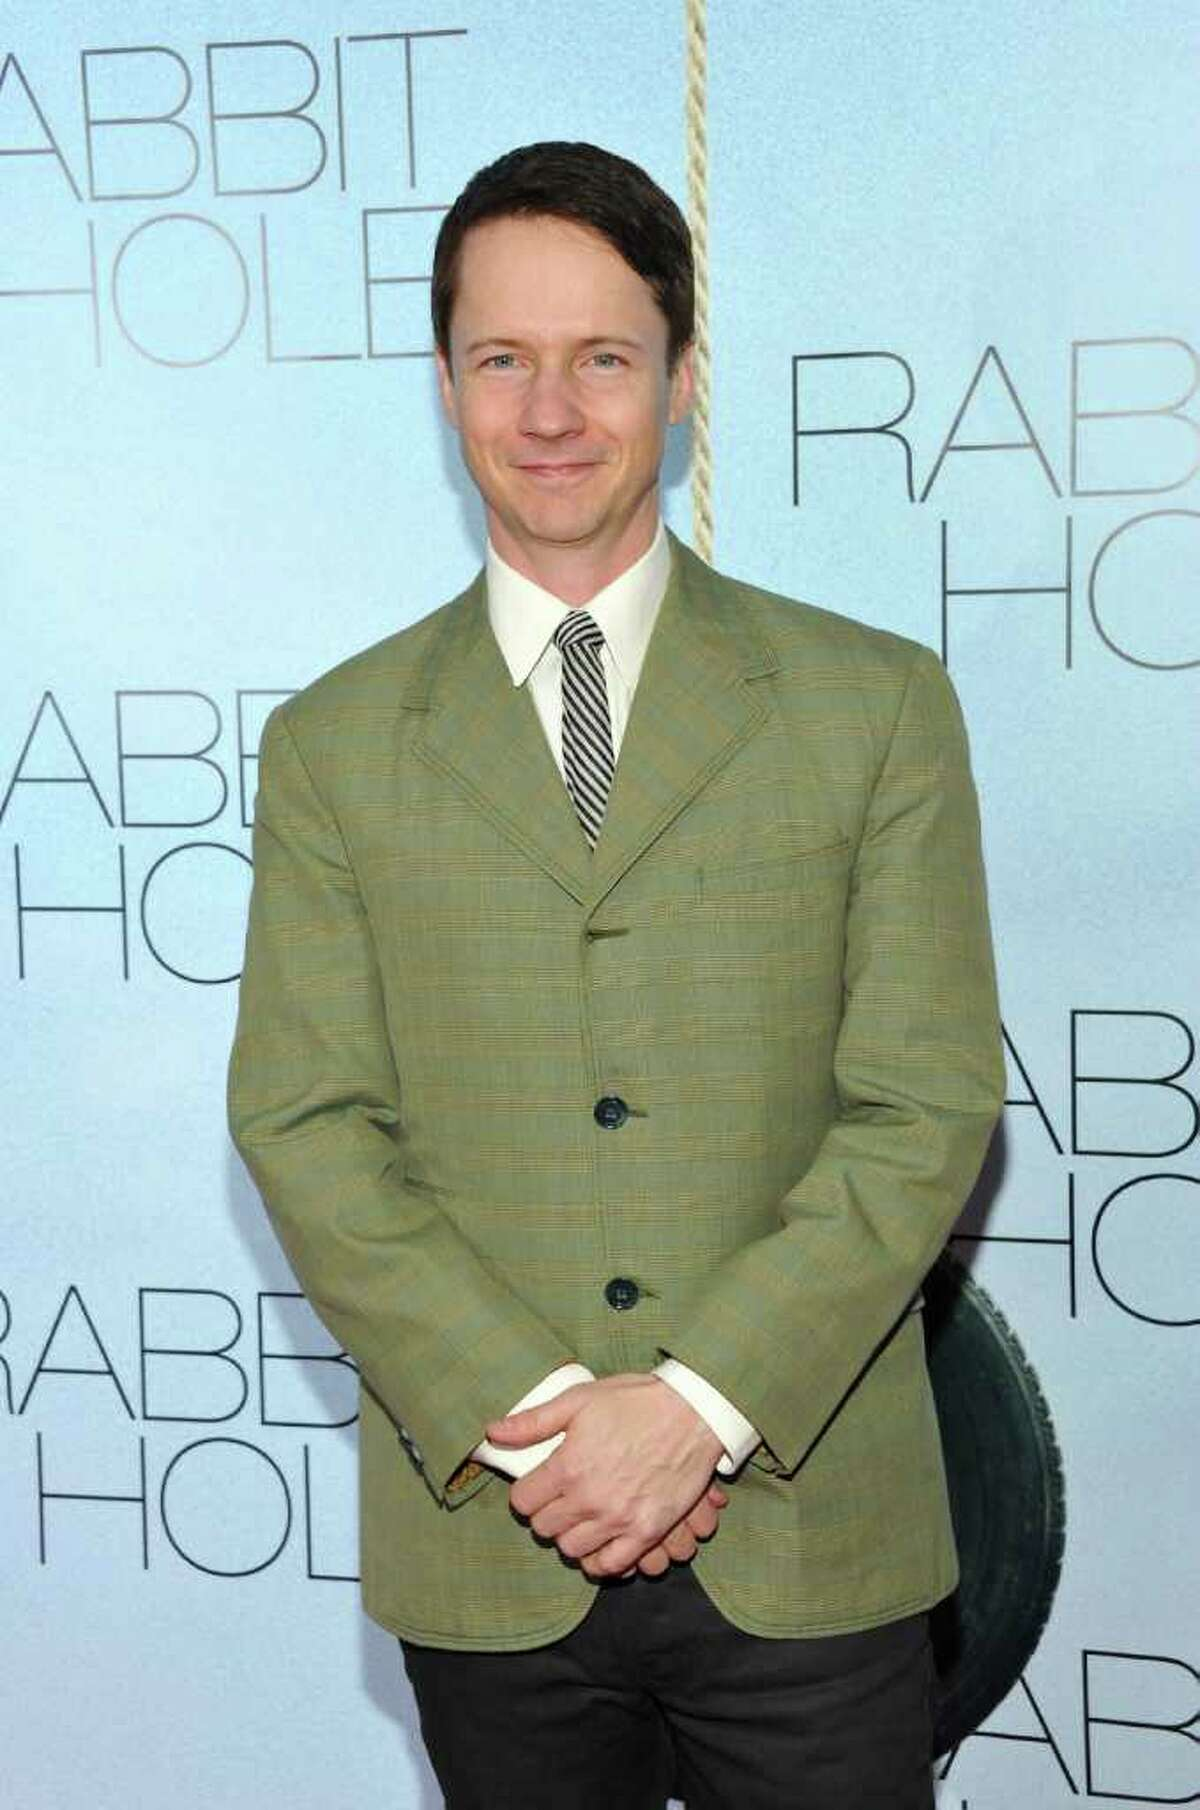 Director John Cameron Mitchell attends the premiere of 'Rabbit Hole' at the Paris Theatre on Thursday, Dec. 2, 2010 in New York. (AP Photo/Evan Agostini)